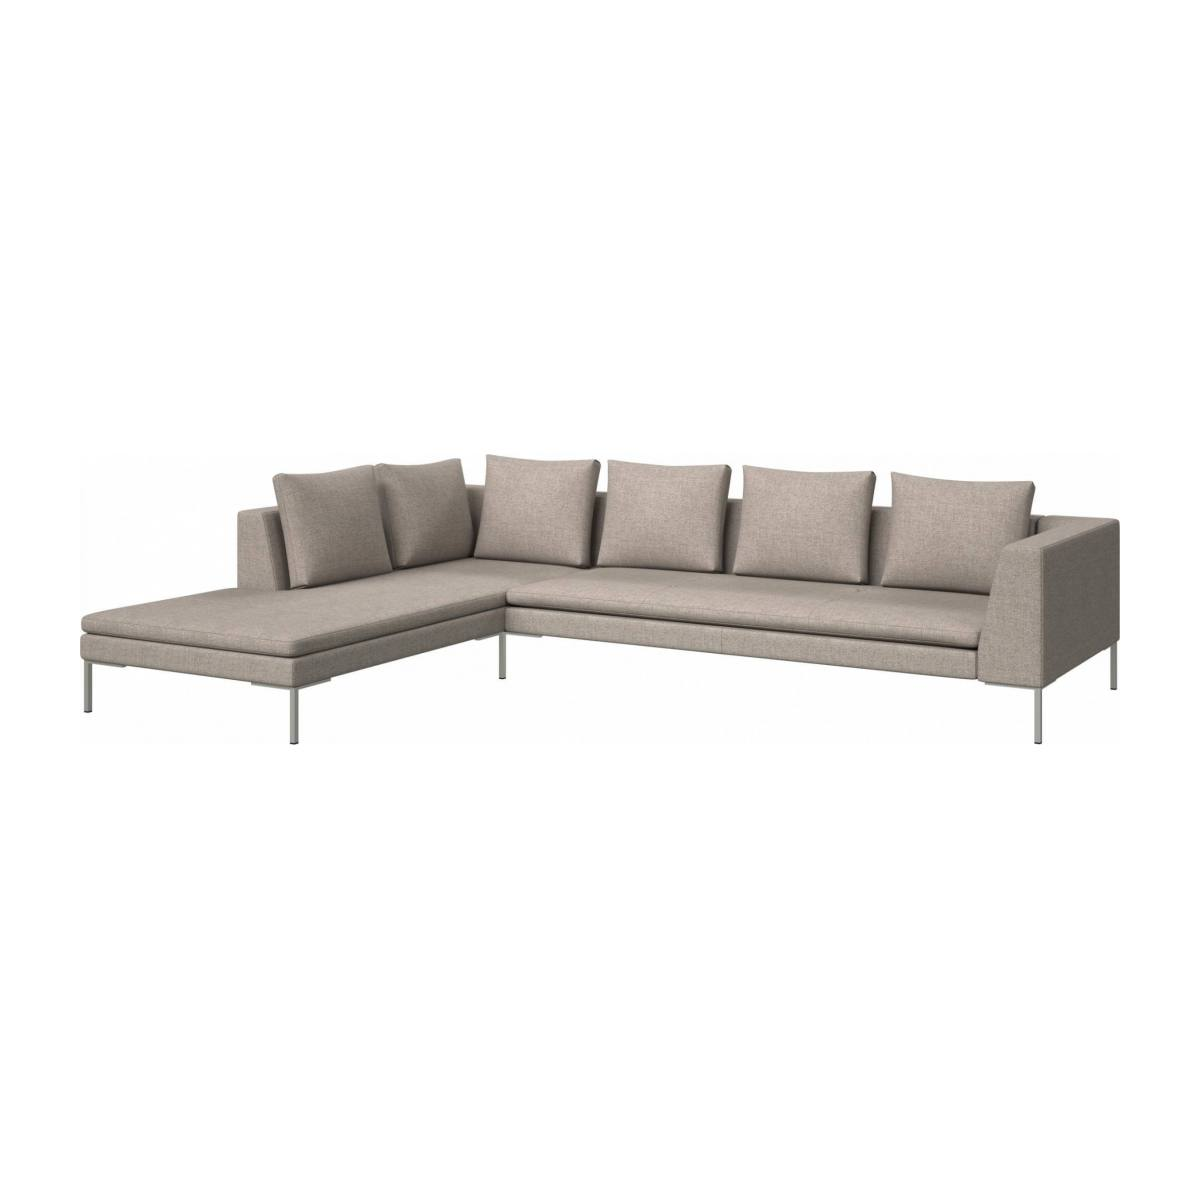 3 seater sofa with chaise longue on the left in Lecce fabric, nature  n°2